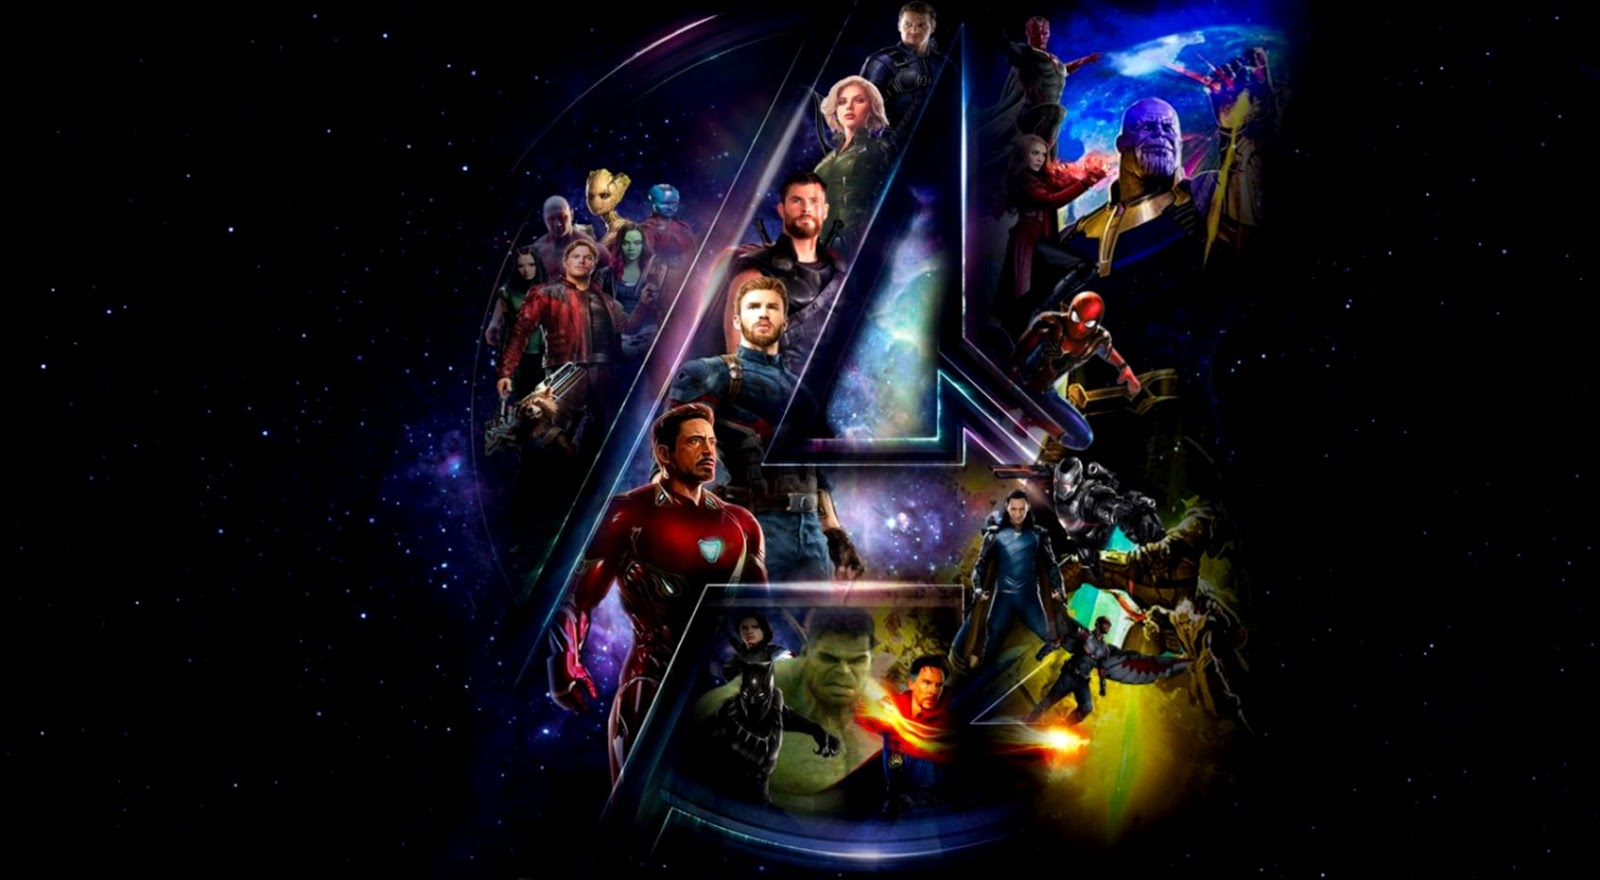 The Avengers Wallpaper Desktop Eazy Wallpapers